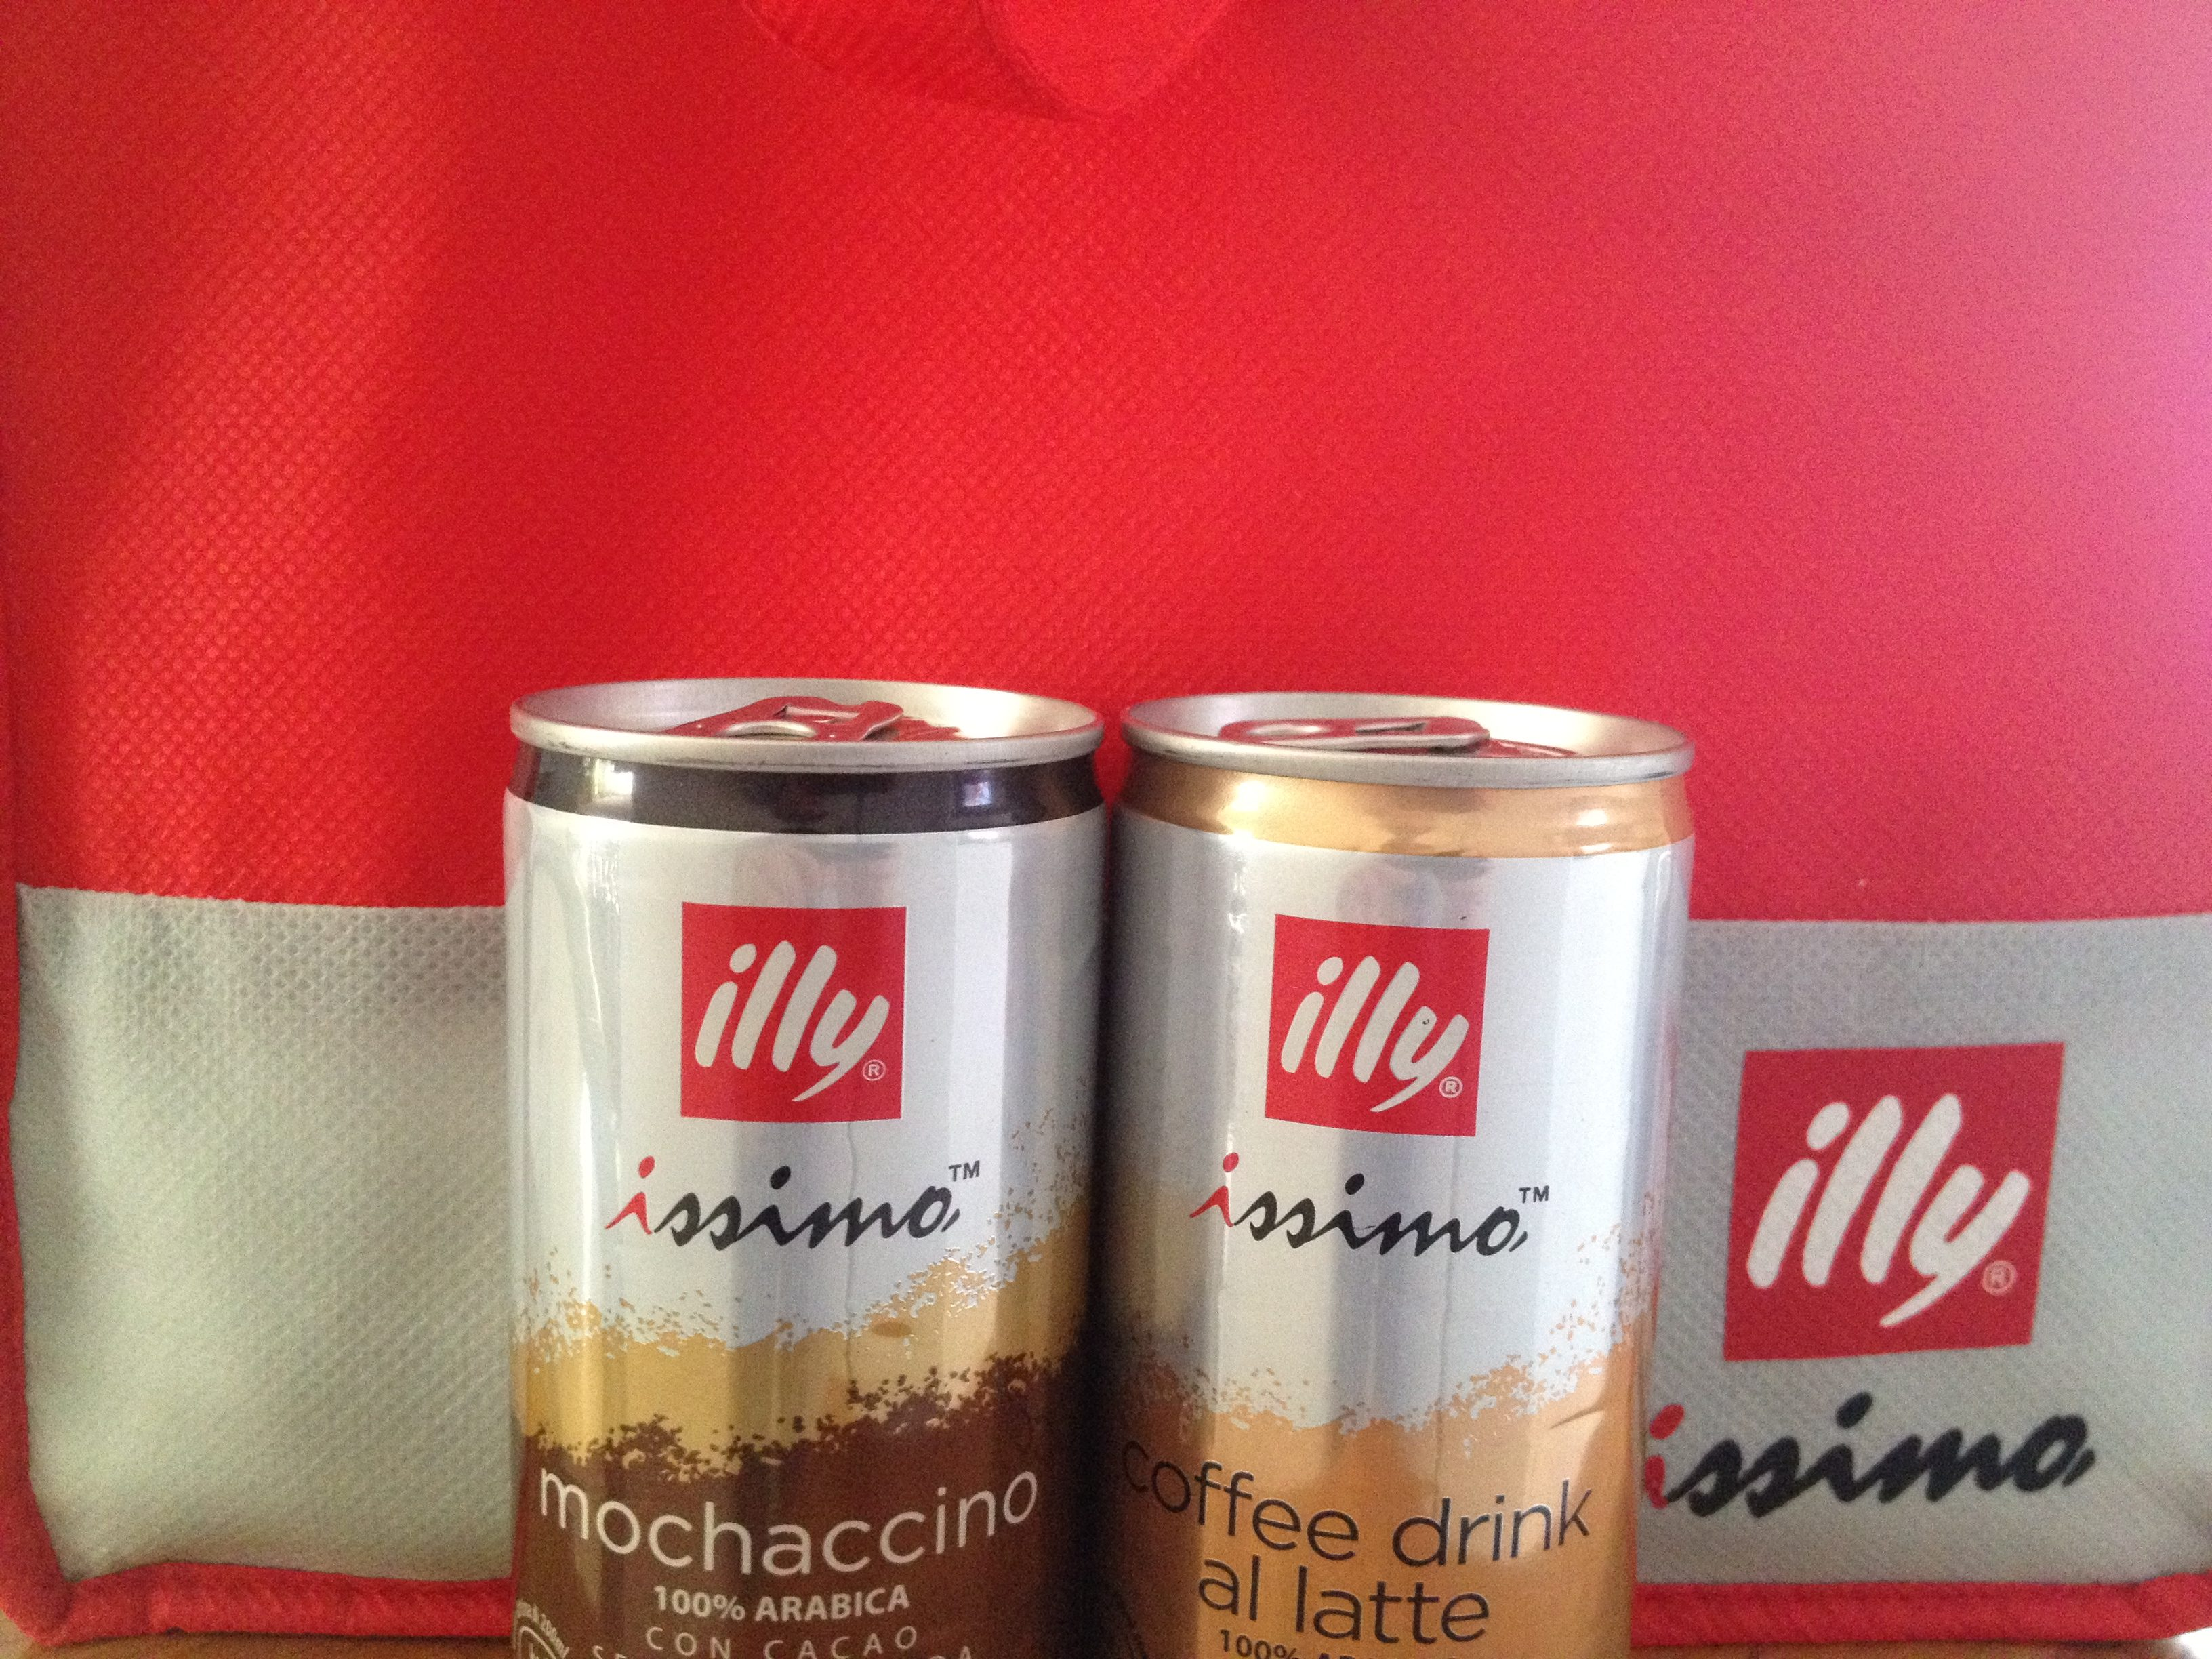 illy issimo